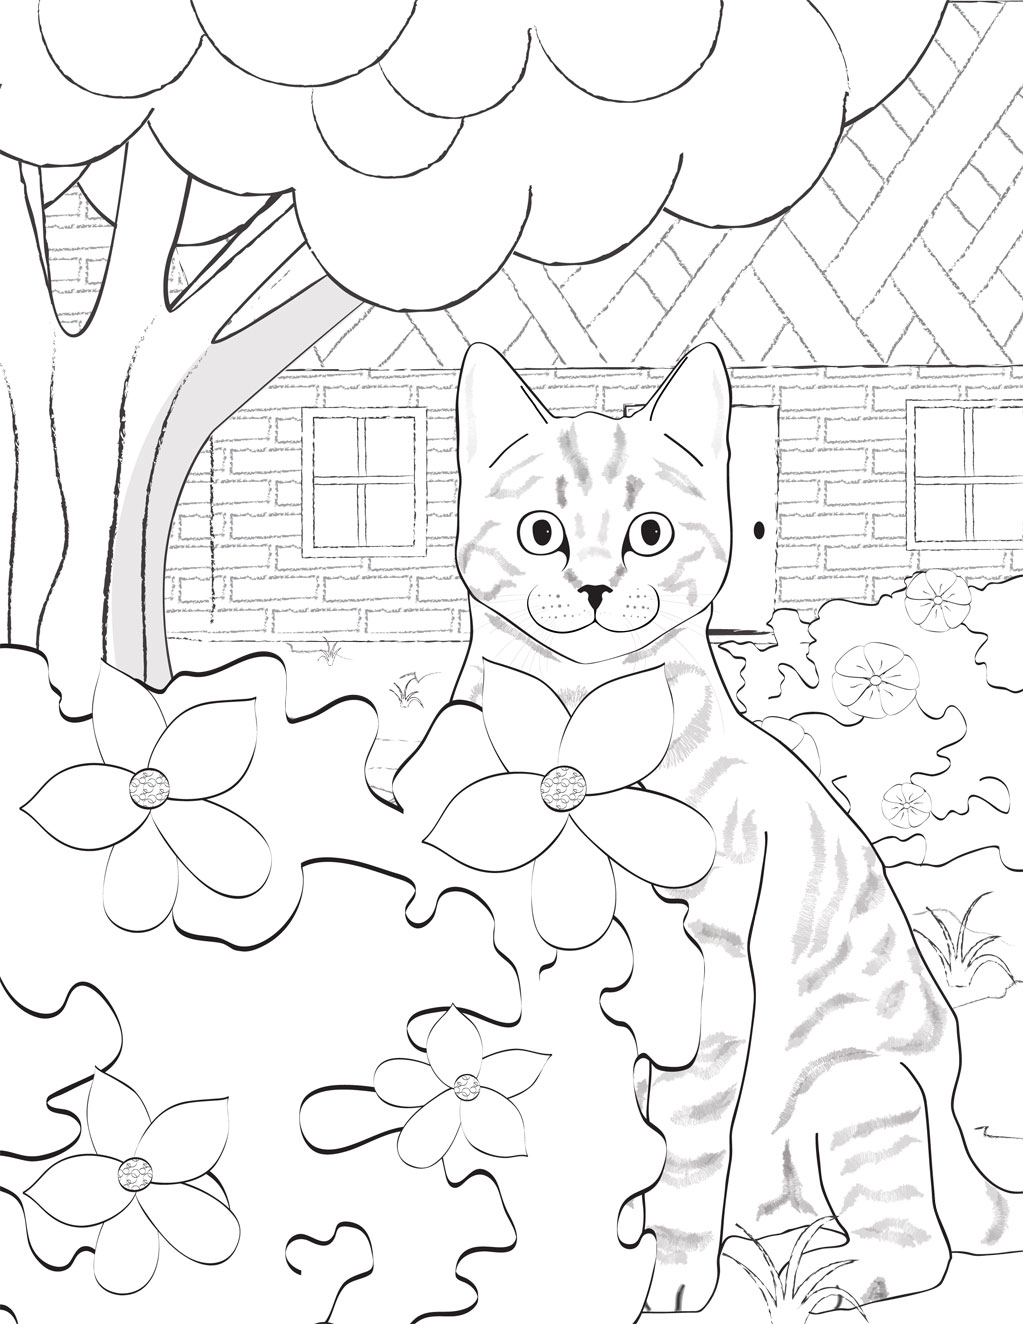 Bush Cat Coloring Page